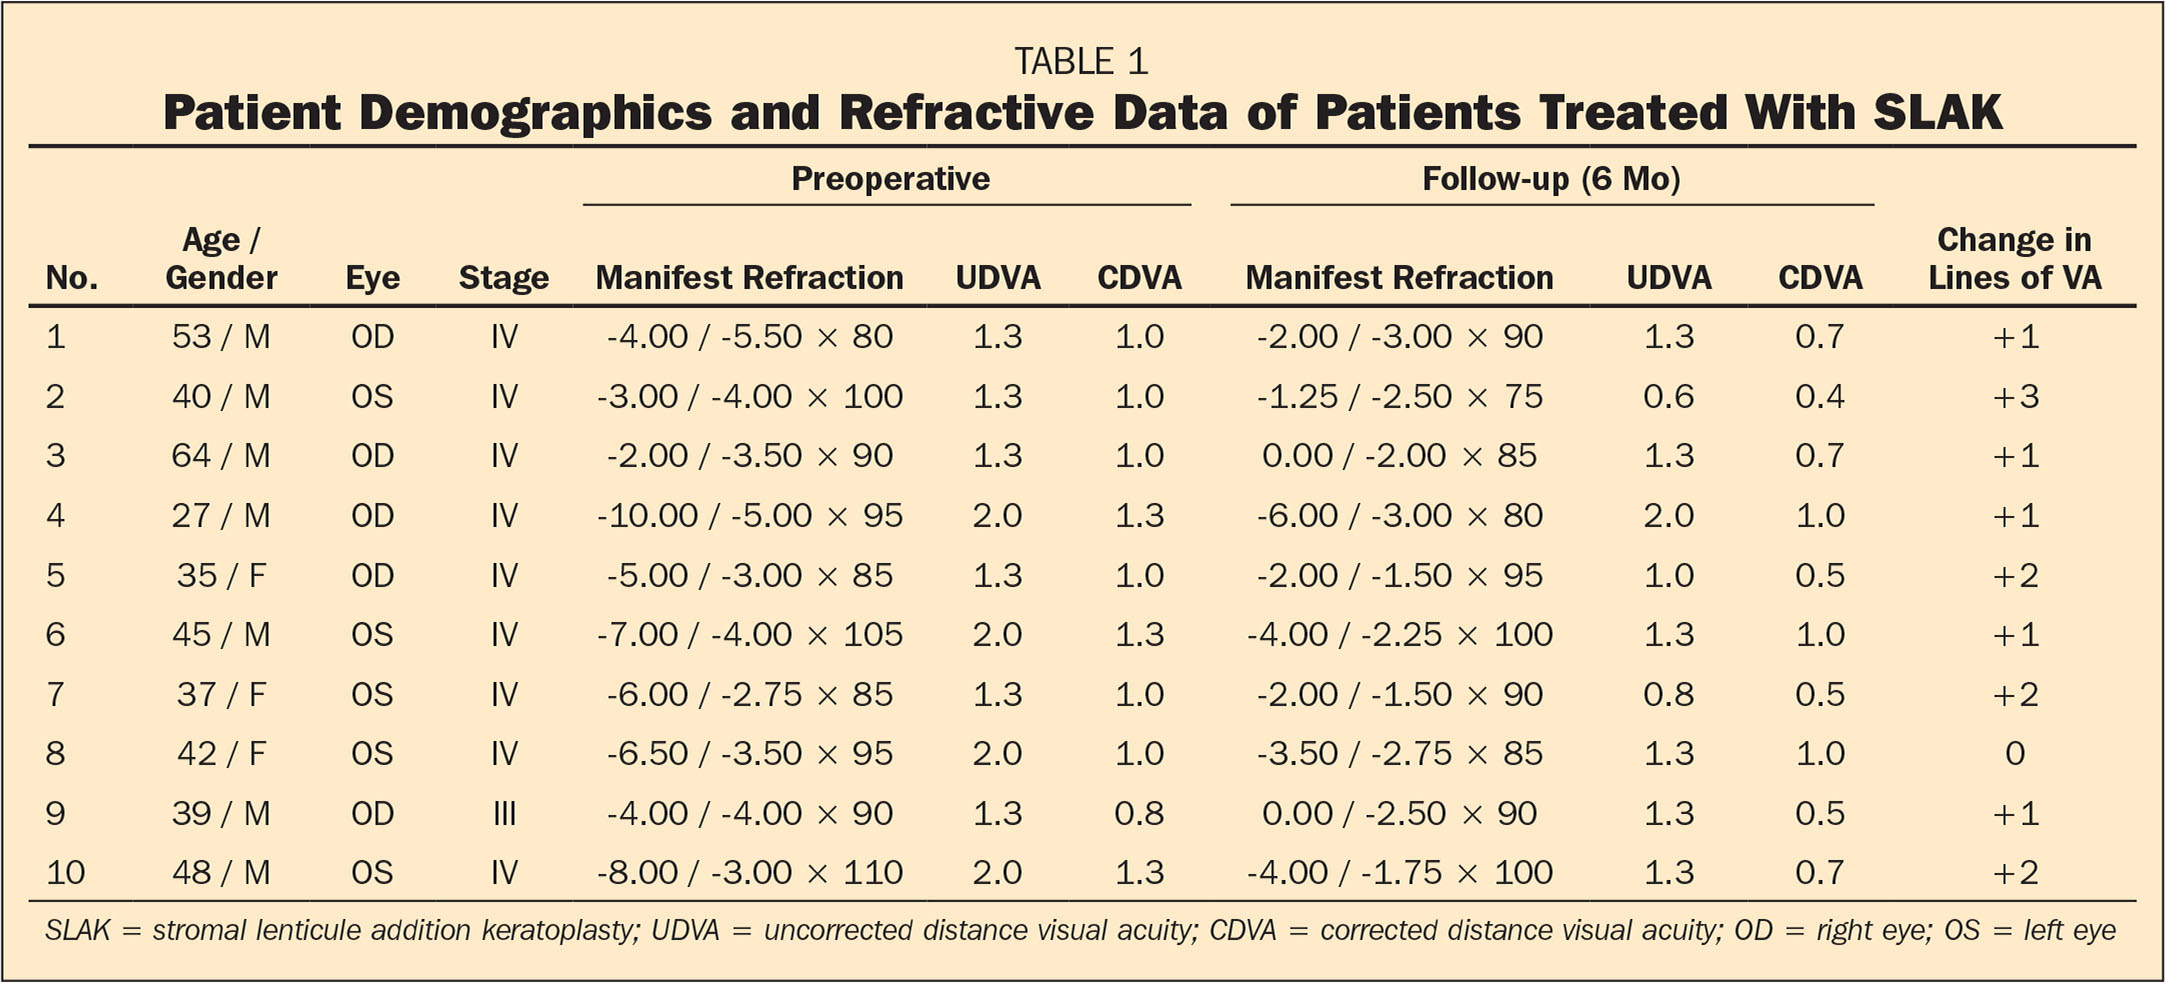 Patient Demographics and Refractive Data of Patients Treated With SLAK